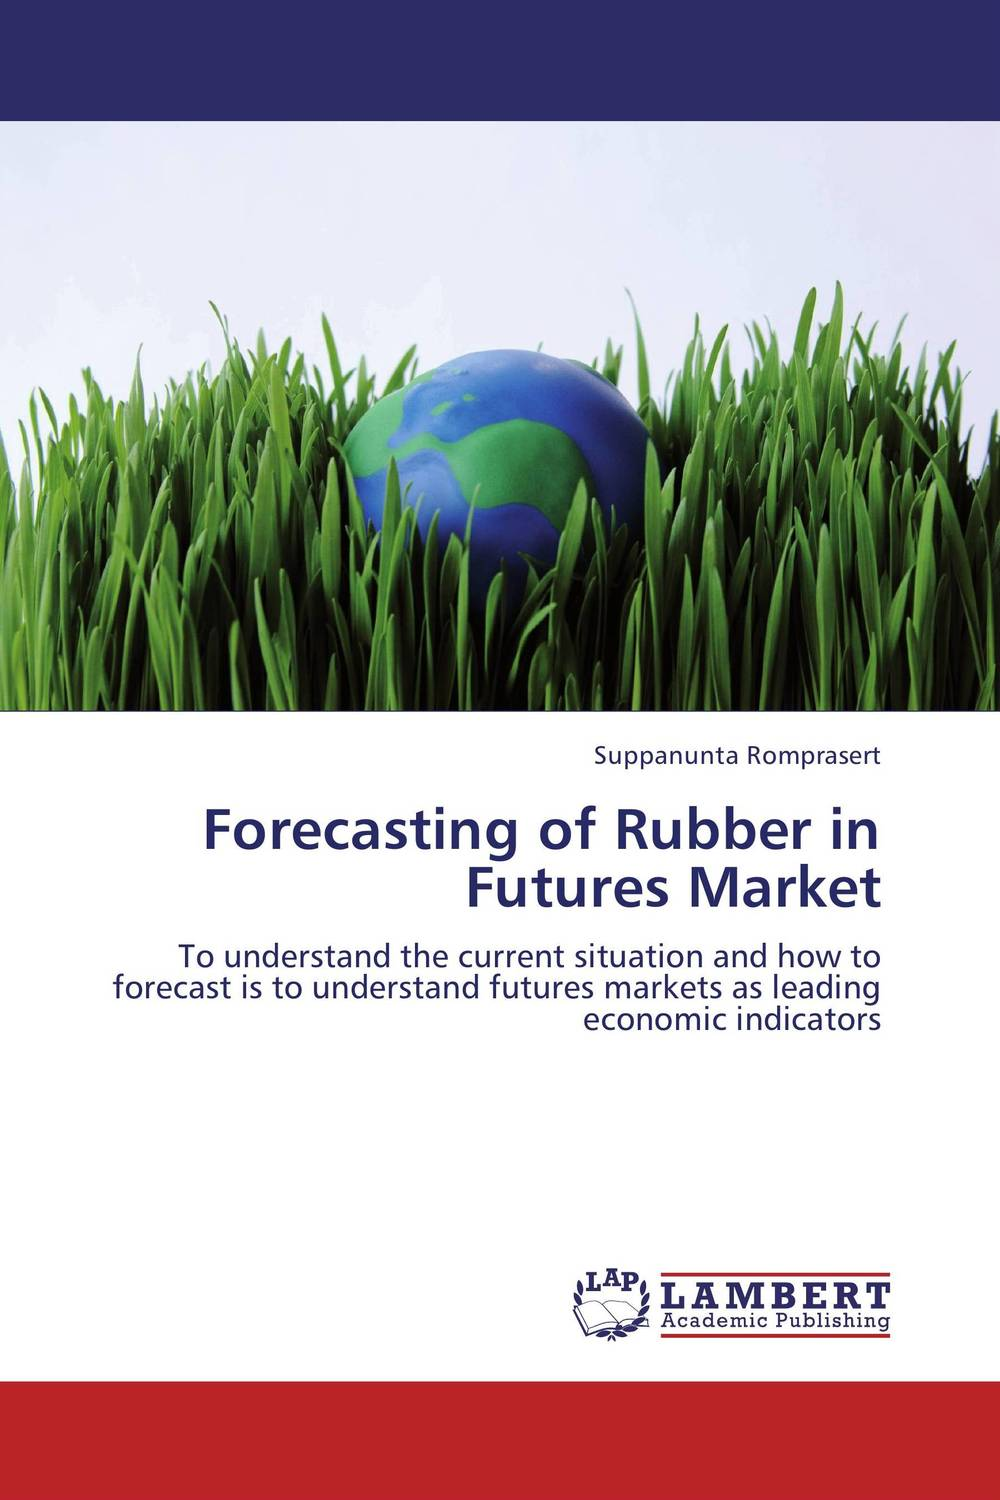 Forecasting of Rubber in Futures Market charles chase w demand driven forecasting a structured approach to forecasting